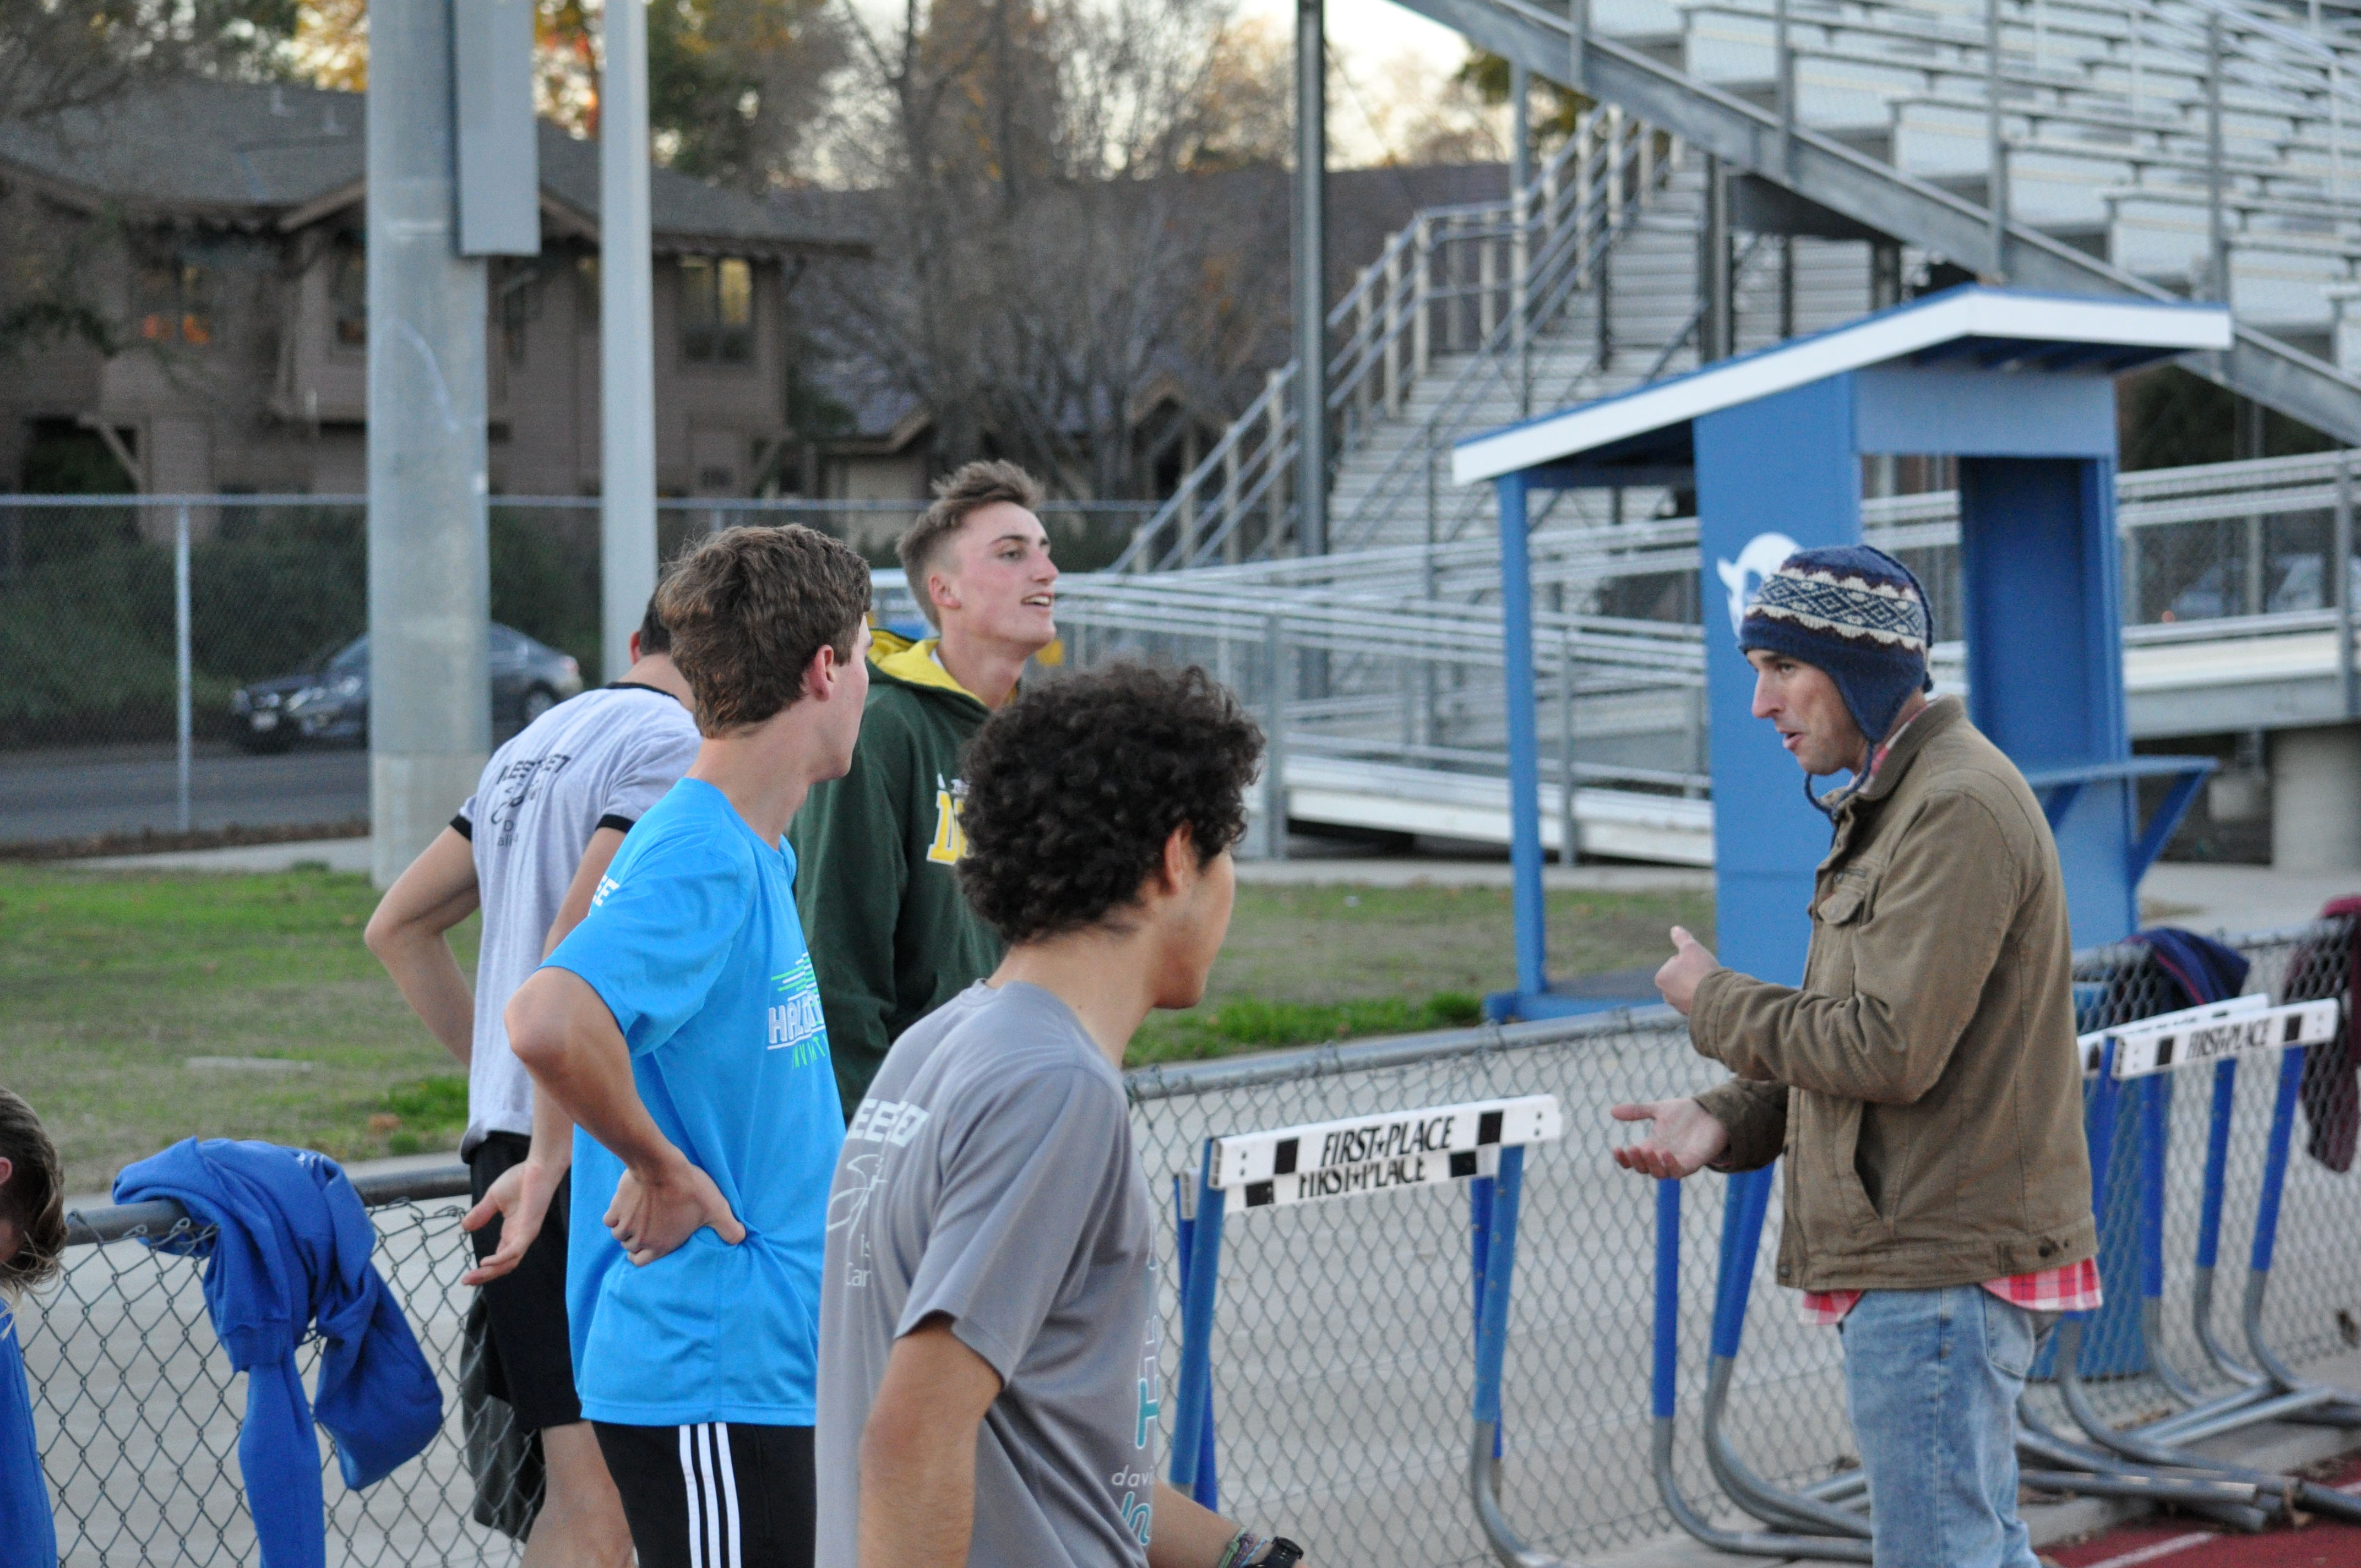 Head coach Spencer Elliott talks with runners during a break at practice.